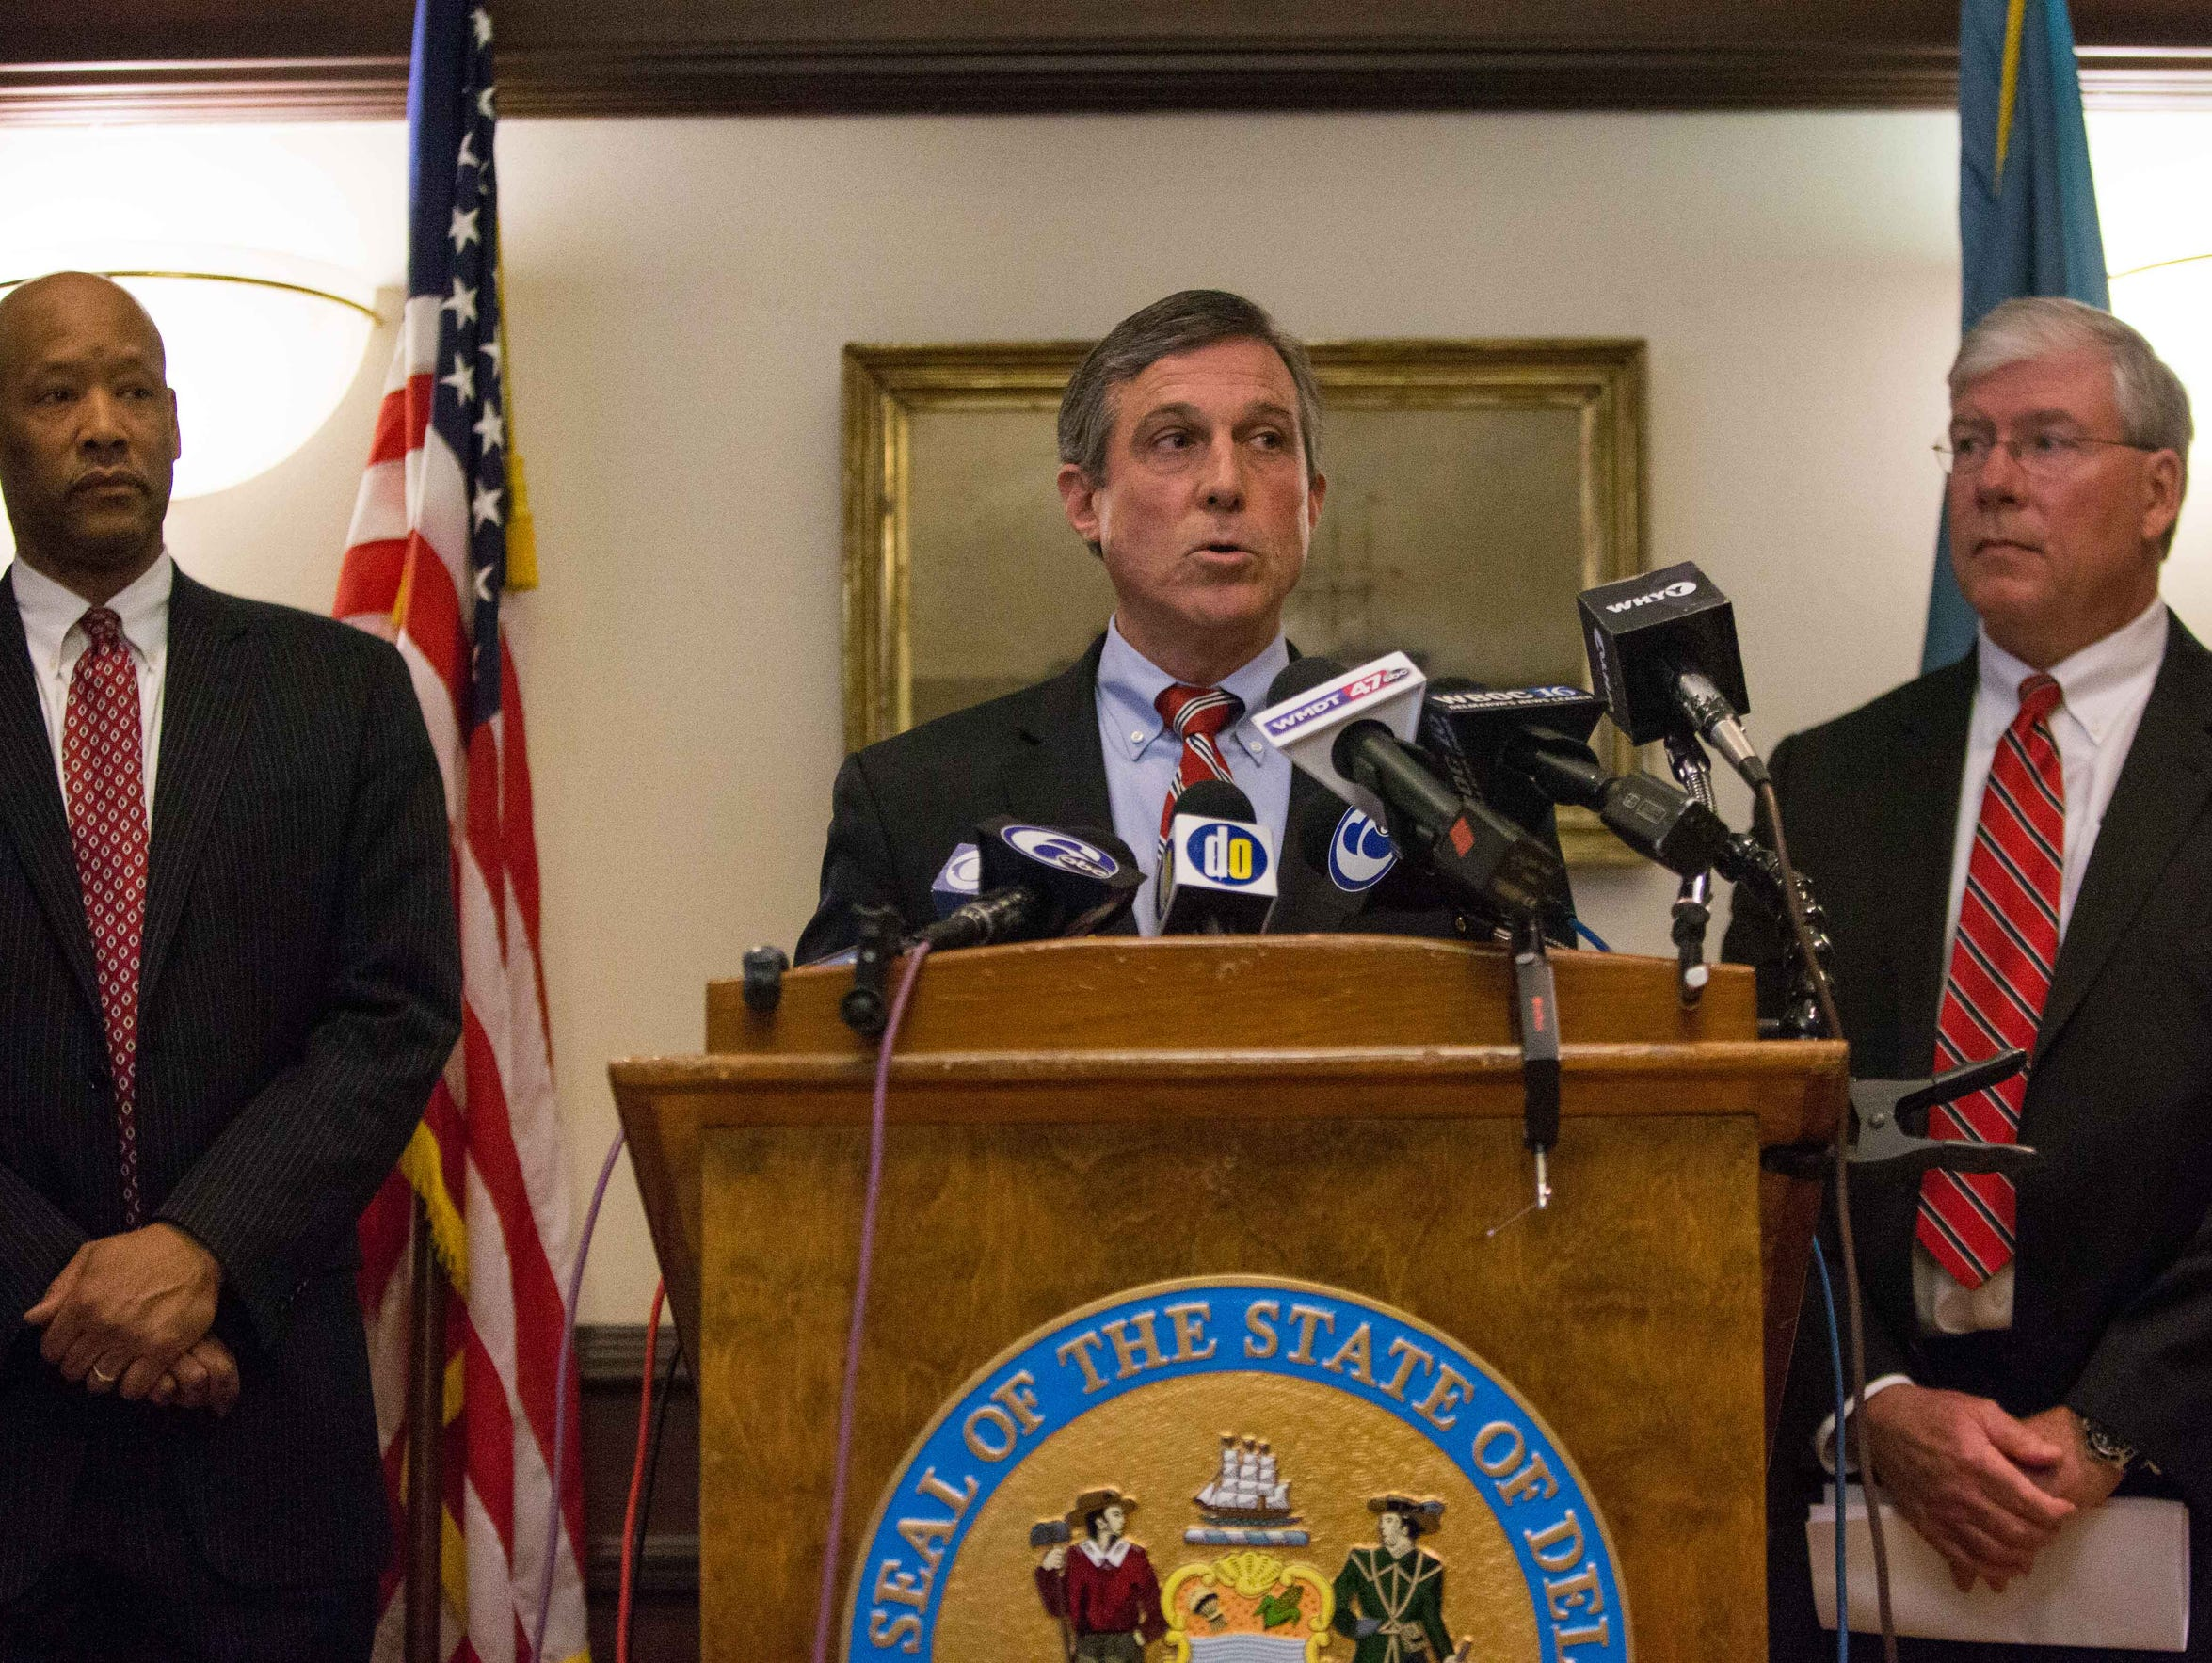 Gov. John Carney calls for an independent review into